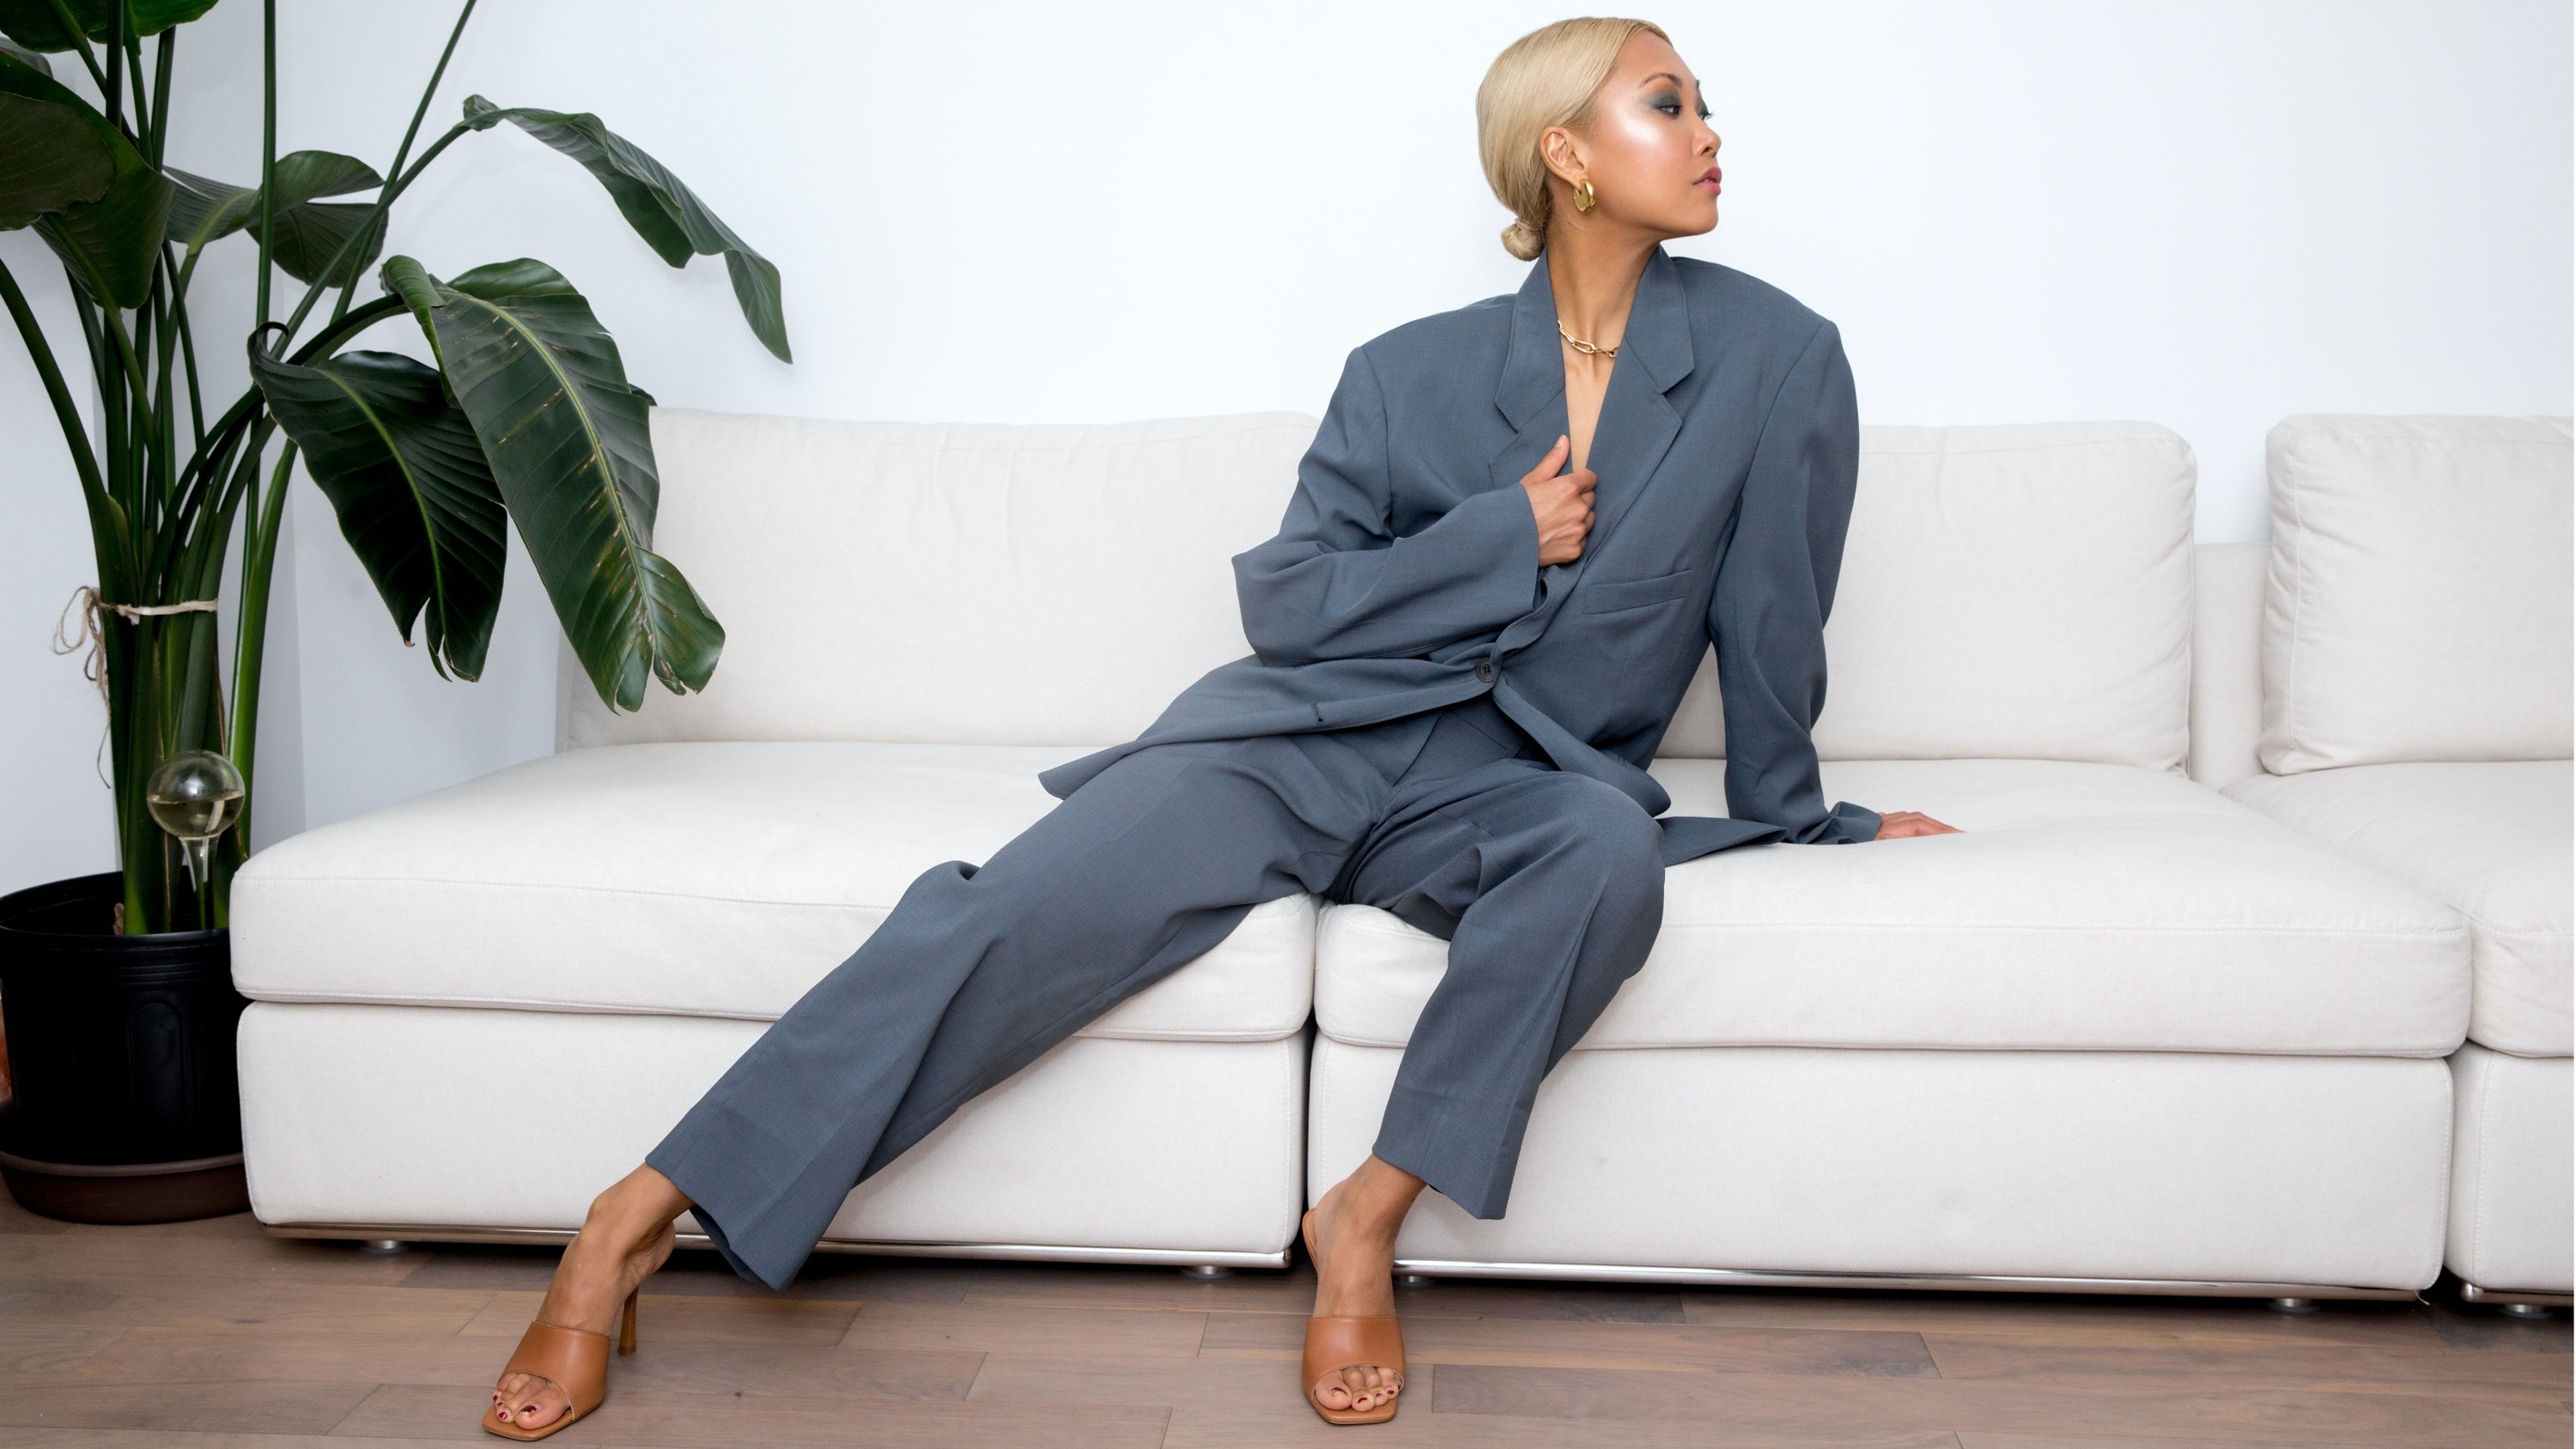 Vanessa Hong sitting on a couch wearing a Dior suit